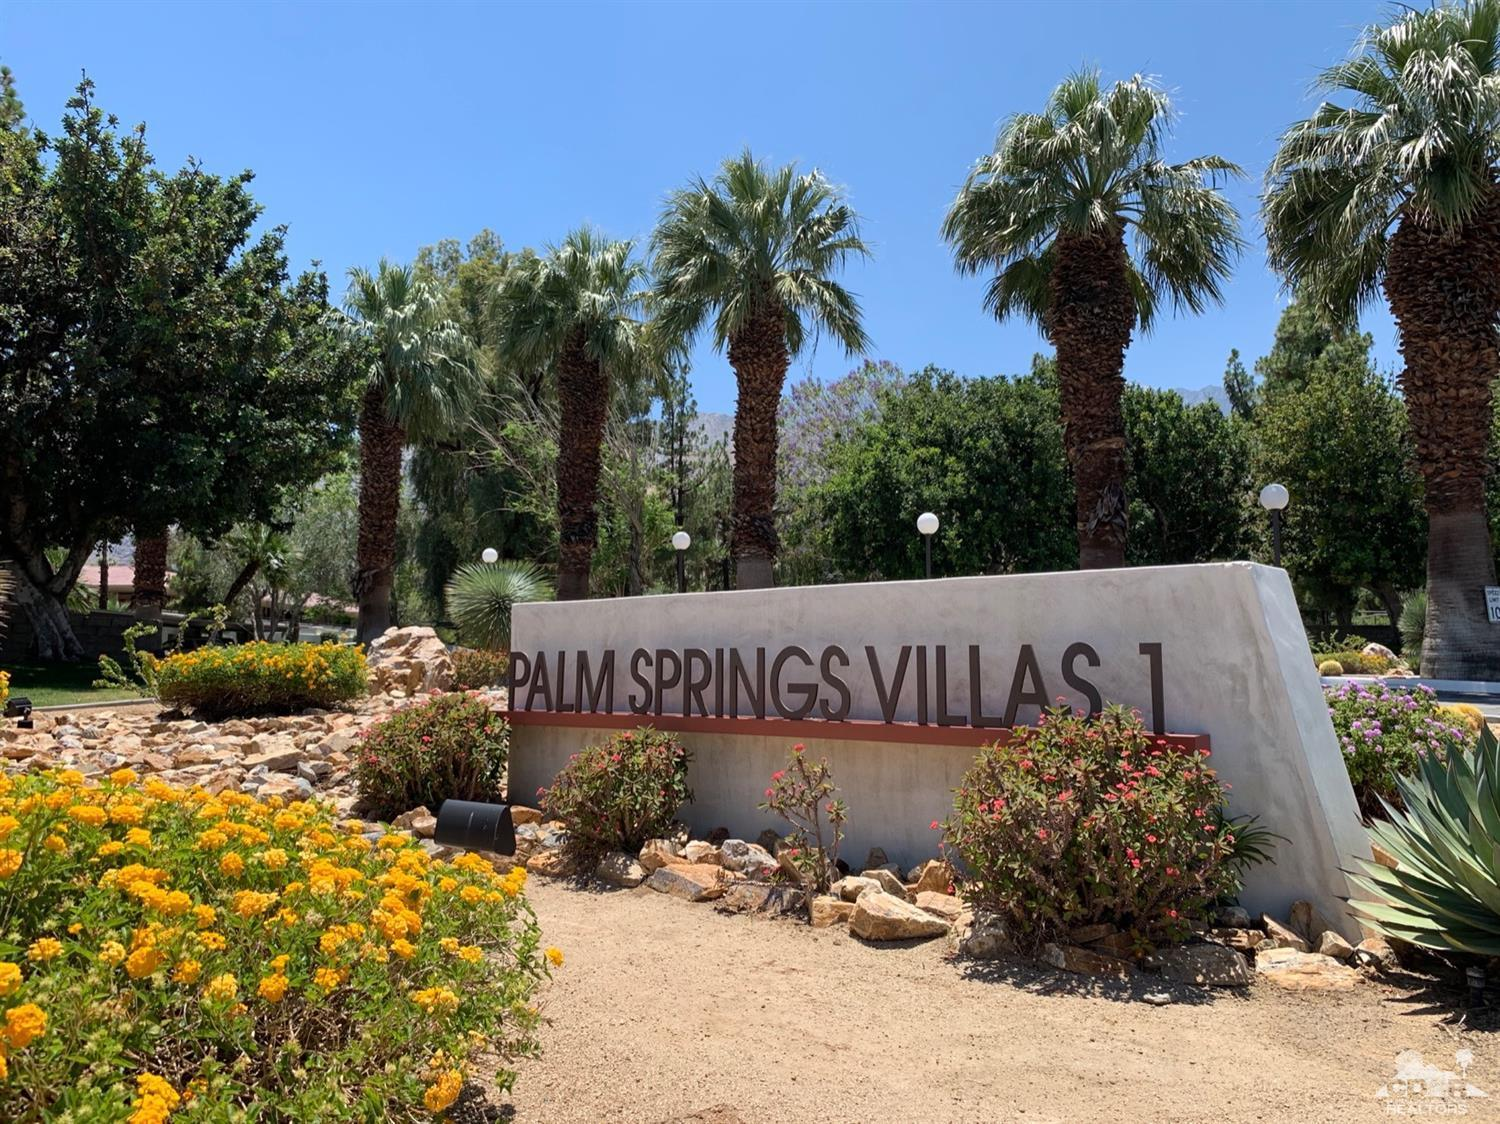 470 N Villa Court Court, Palm Springs, California 92262, 1 Bedroom Bedrooms, ,1 BathroomBathrooms,Residential,Sold,470 N Villa Court Court,219016383